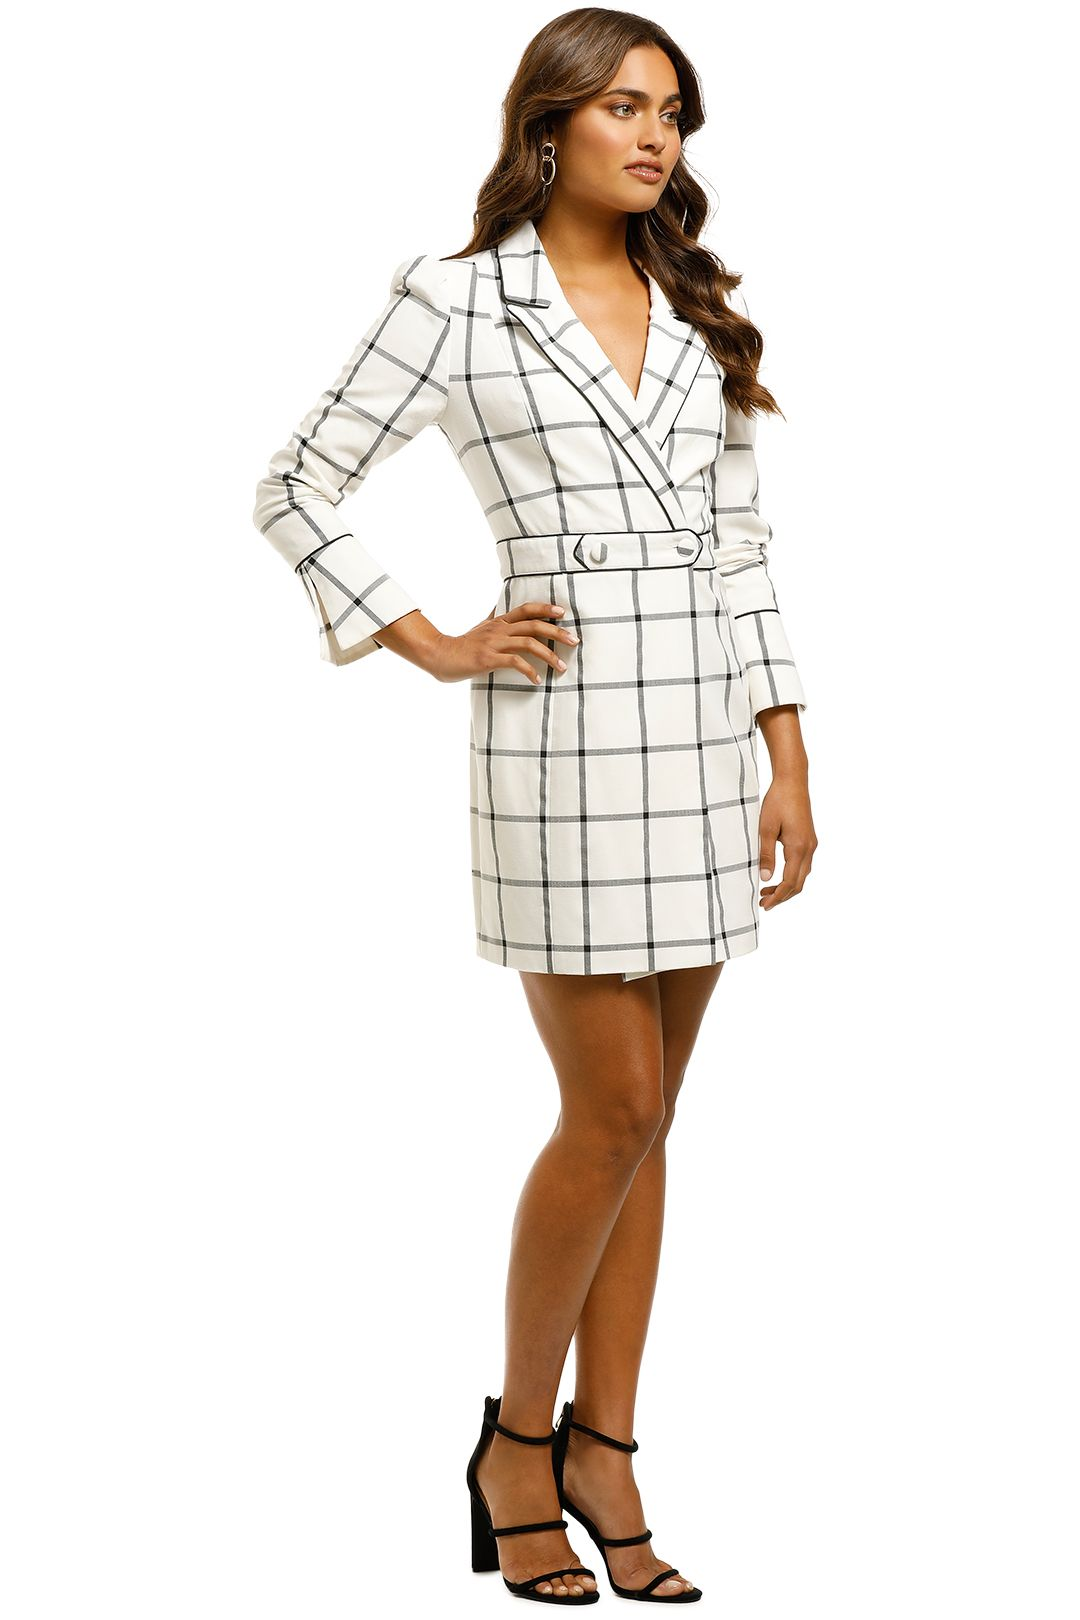 Misha Collection - Rachelle Blazer Dress - Check - Side